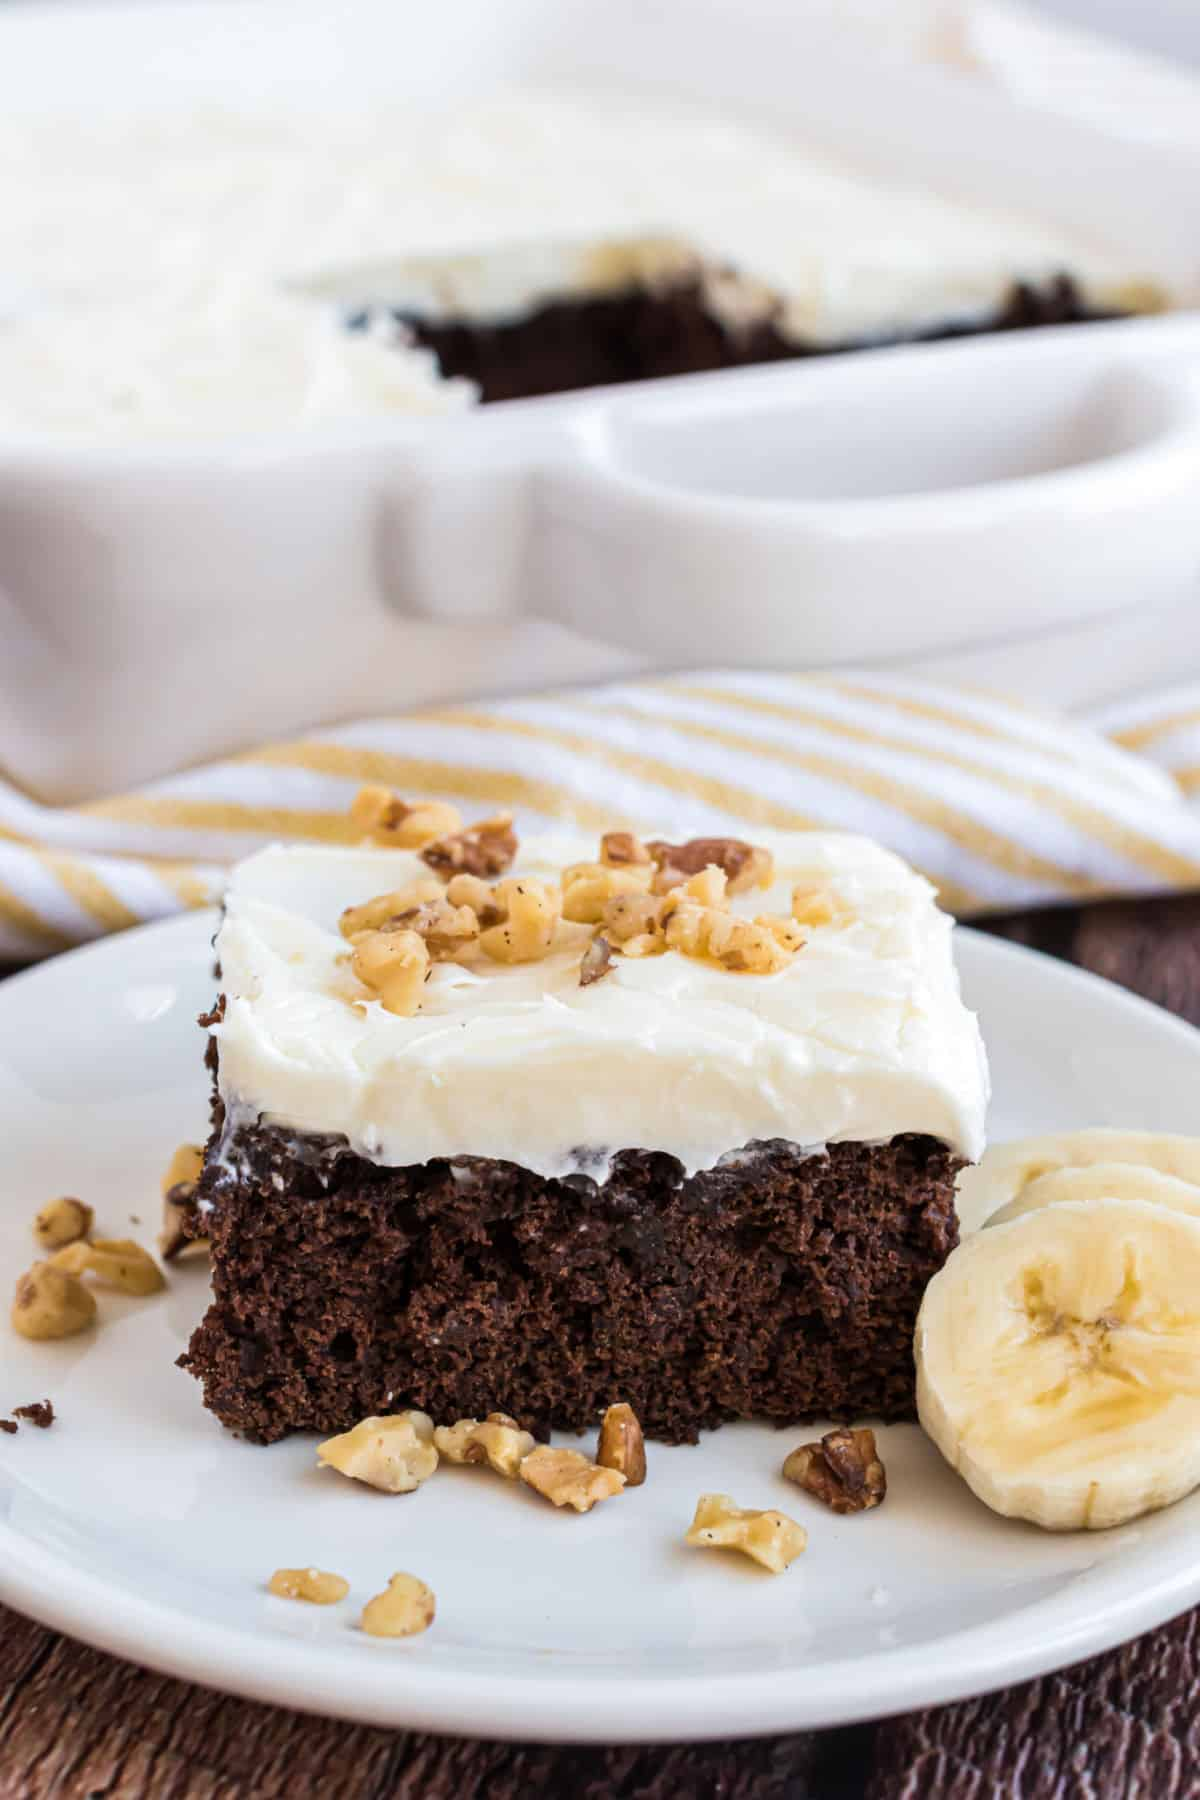 Chocolate banana cake with cream cheese frosting and walnuts served on a white plate.